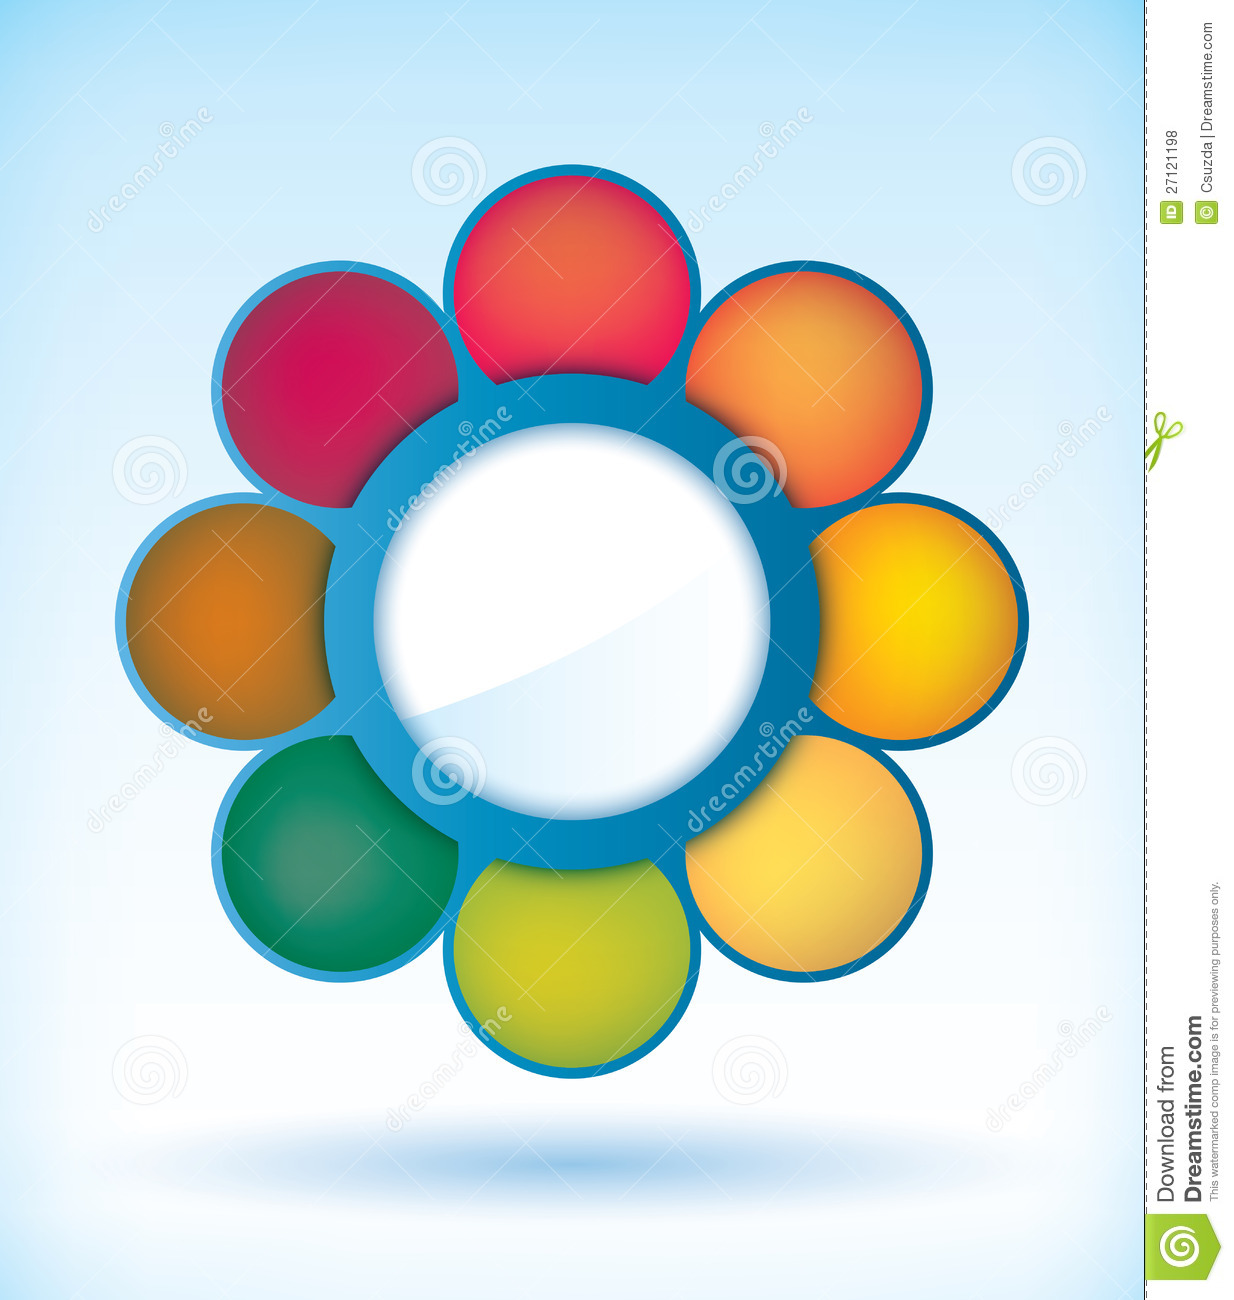 flower presentation diagram stock vector illustration of